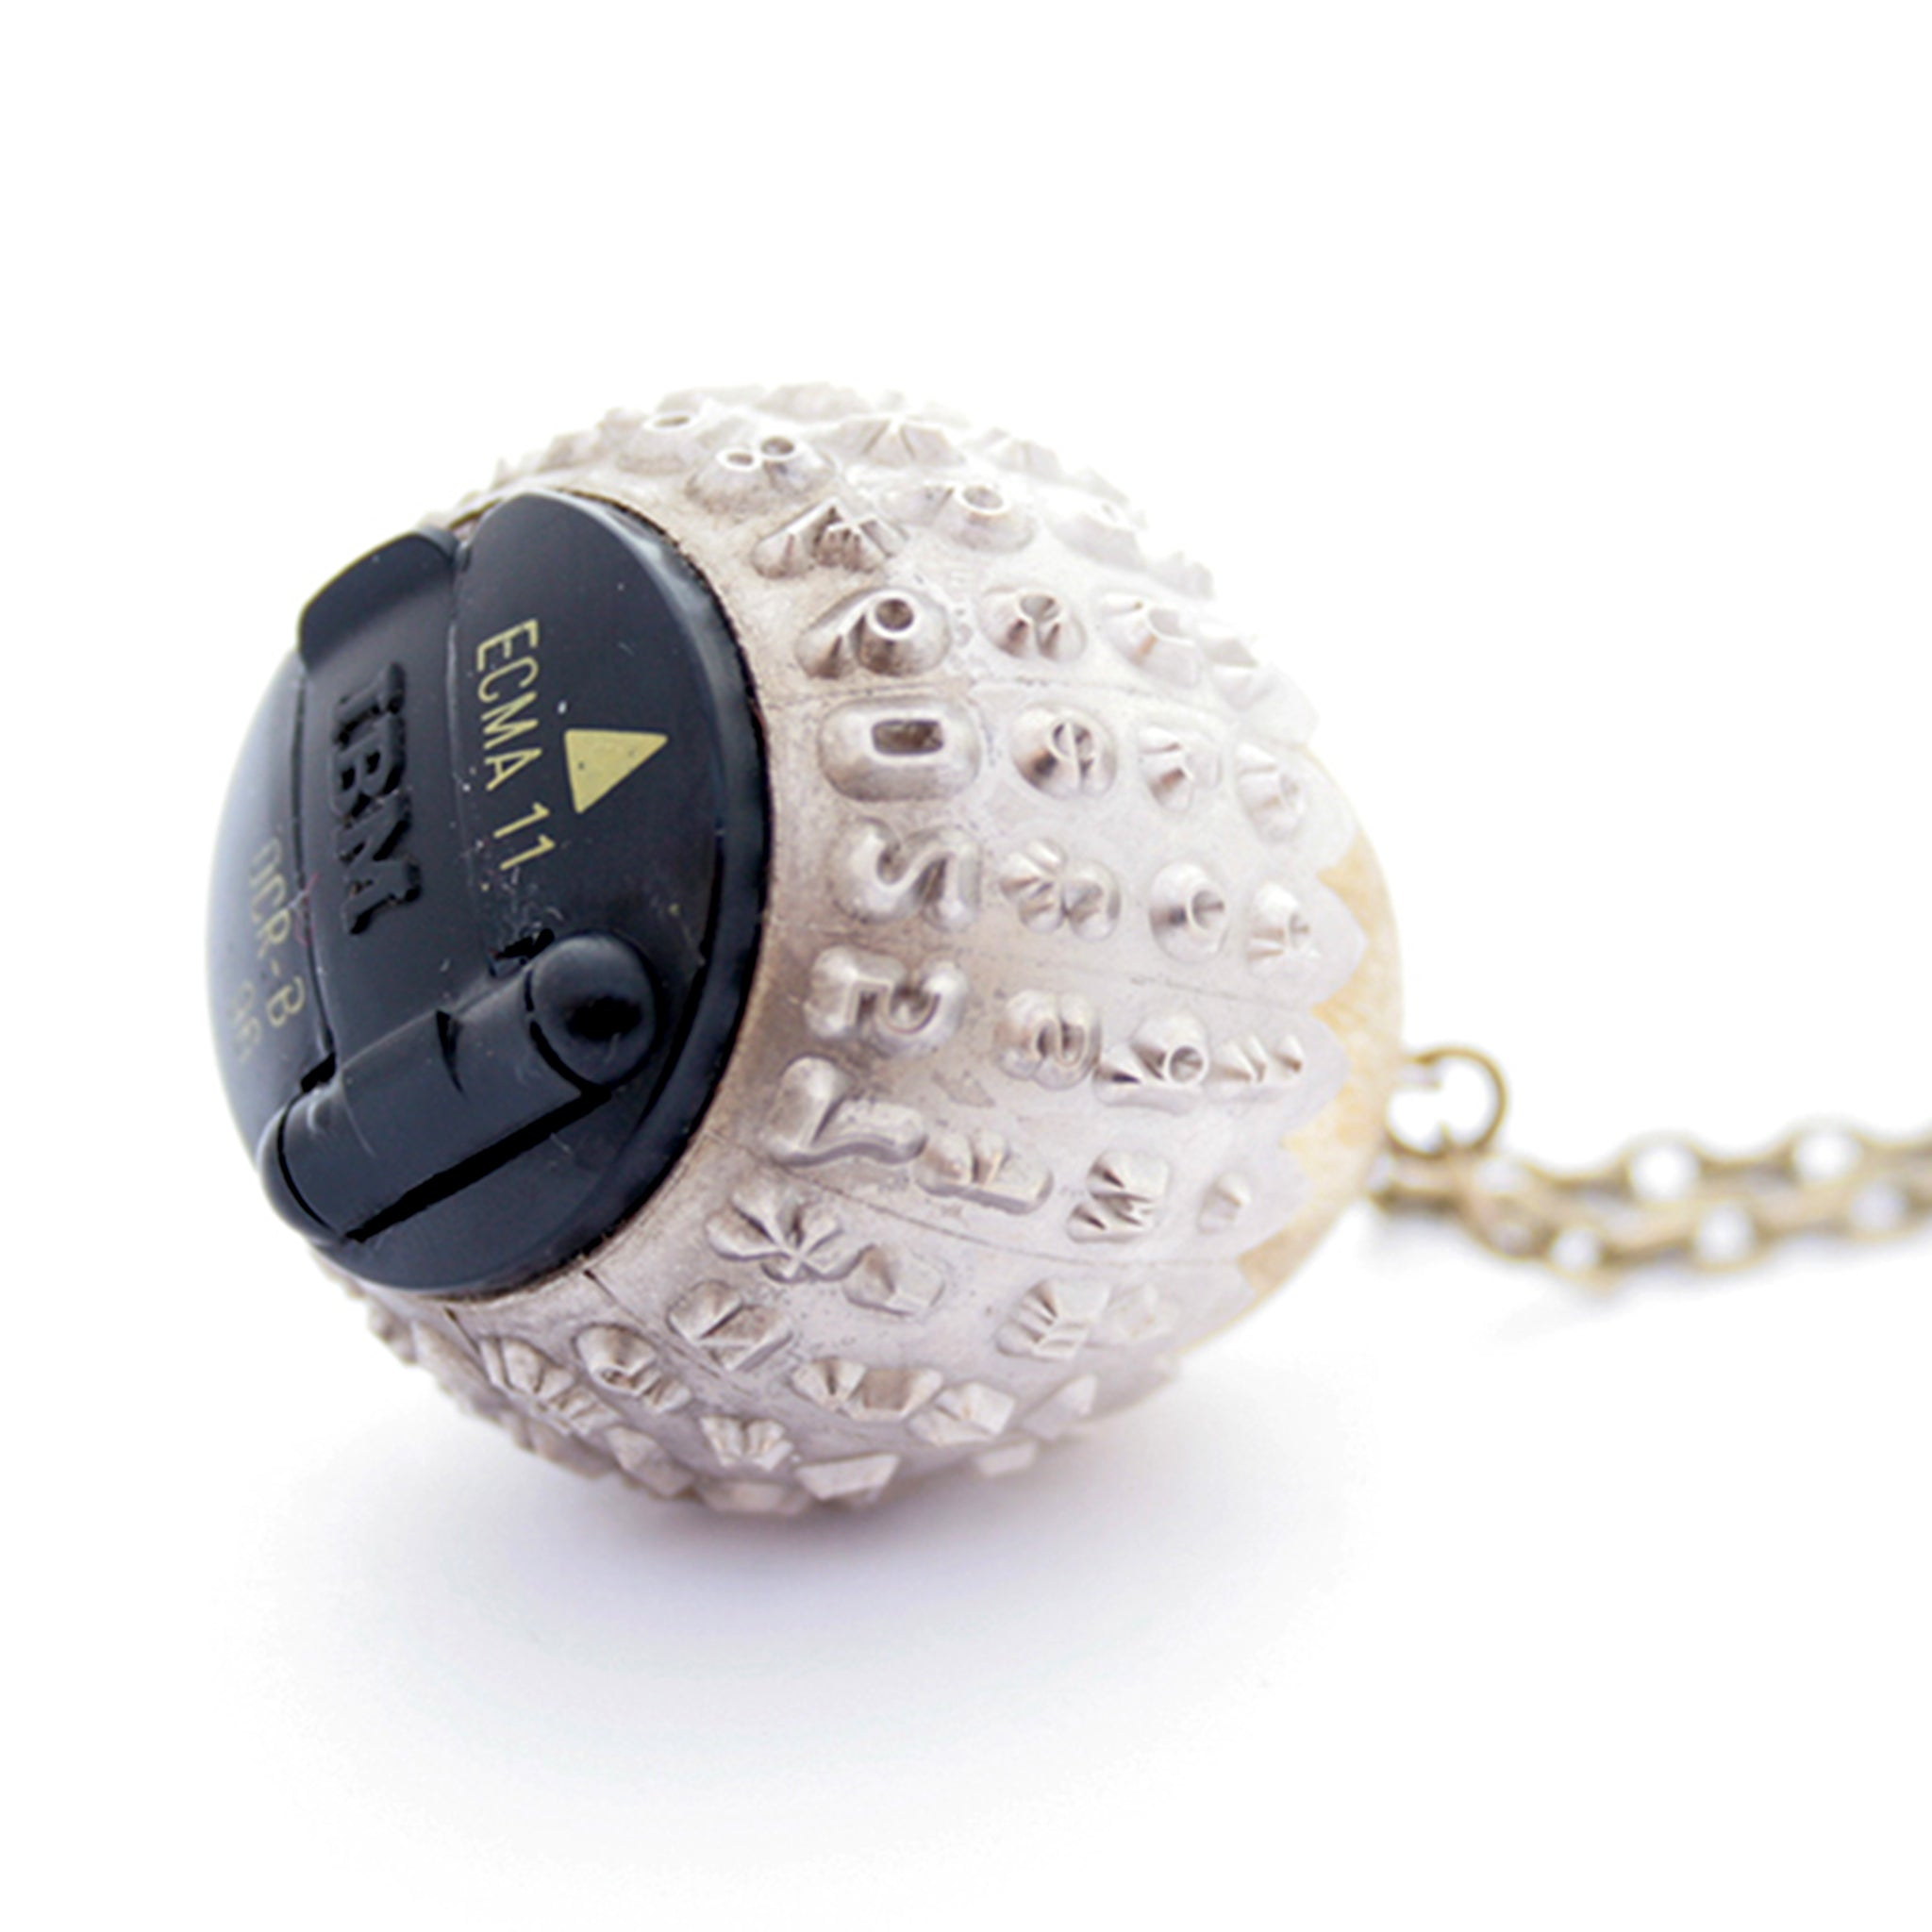 IBM Selectric typewriter font ball with large gold tone bead turned into eye catching necklace